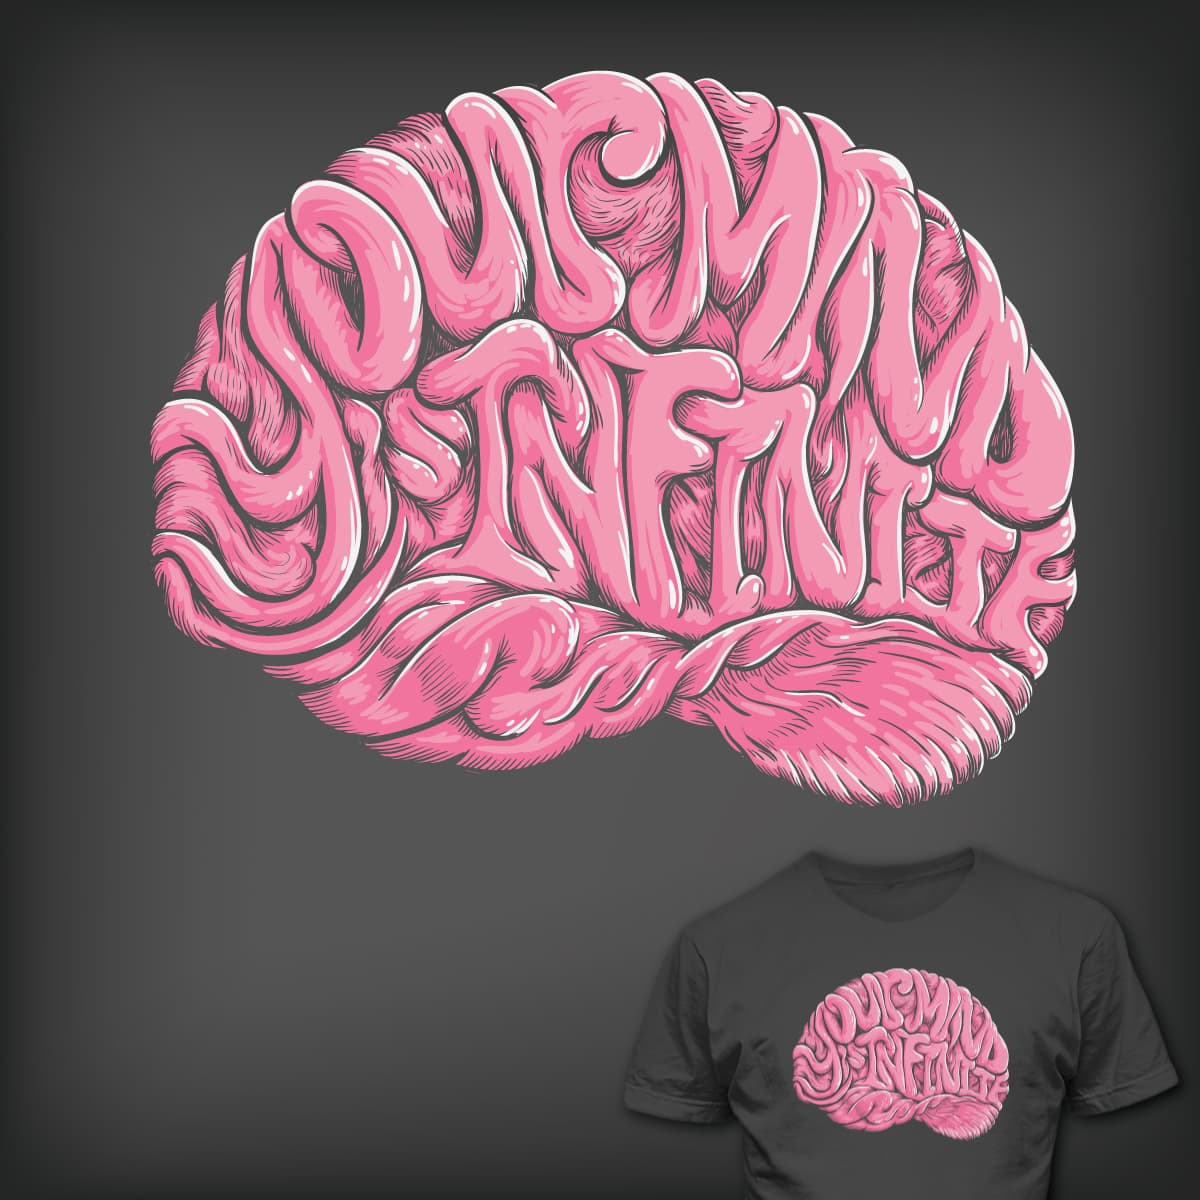 Your Mind is Infinite by jcastillo81 on Threadless